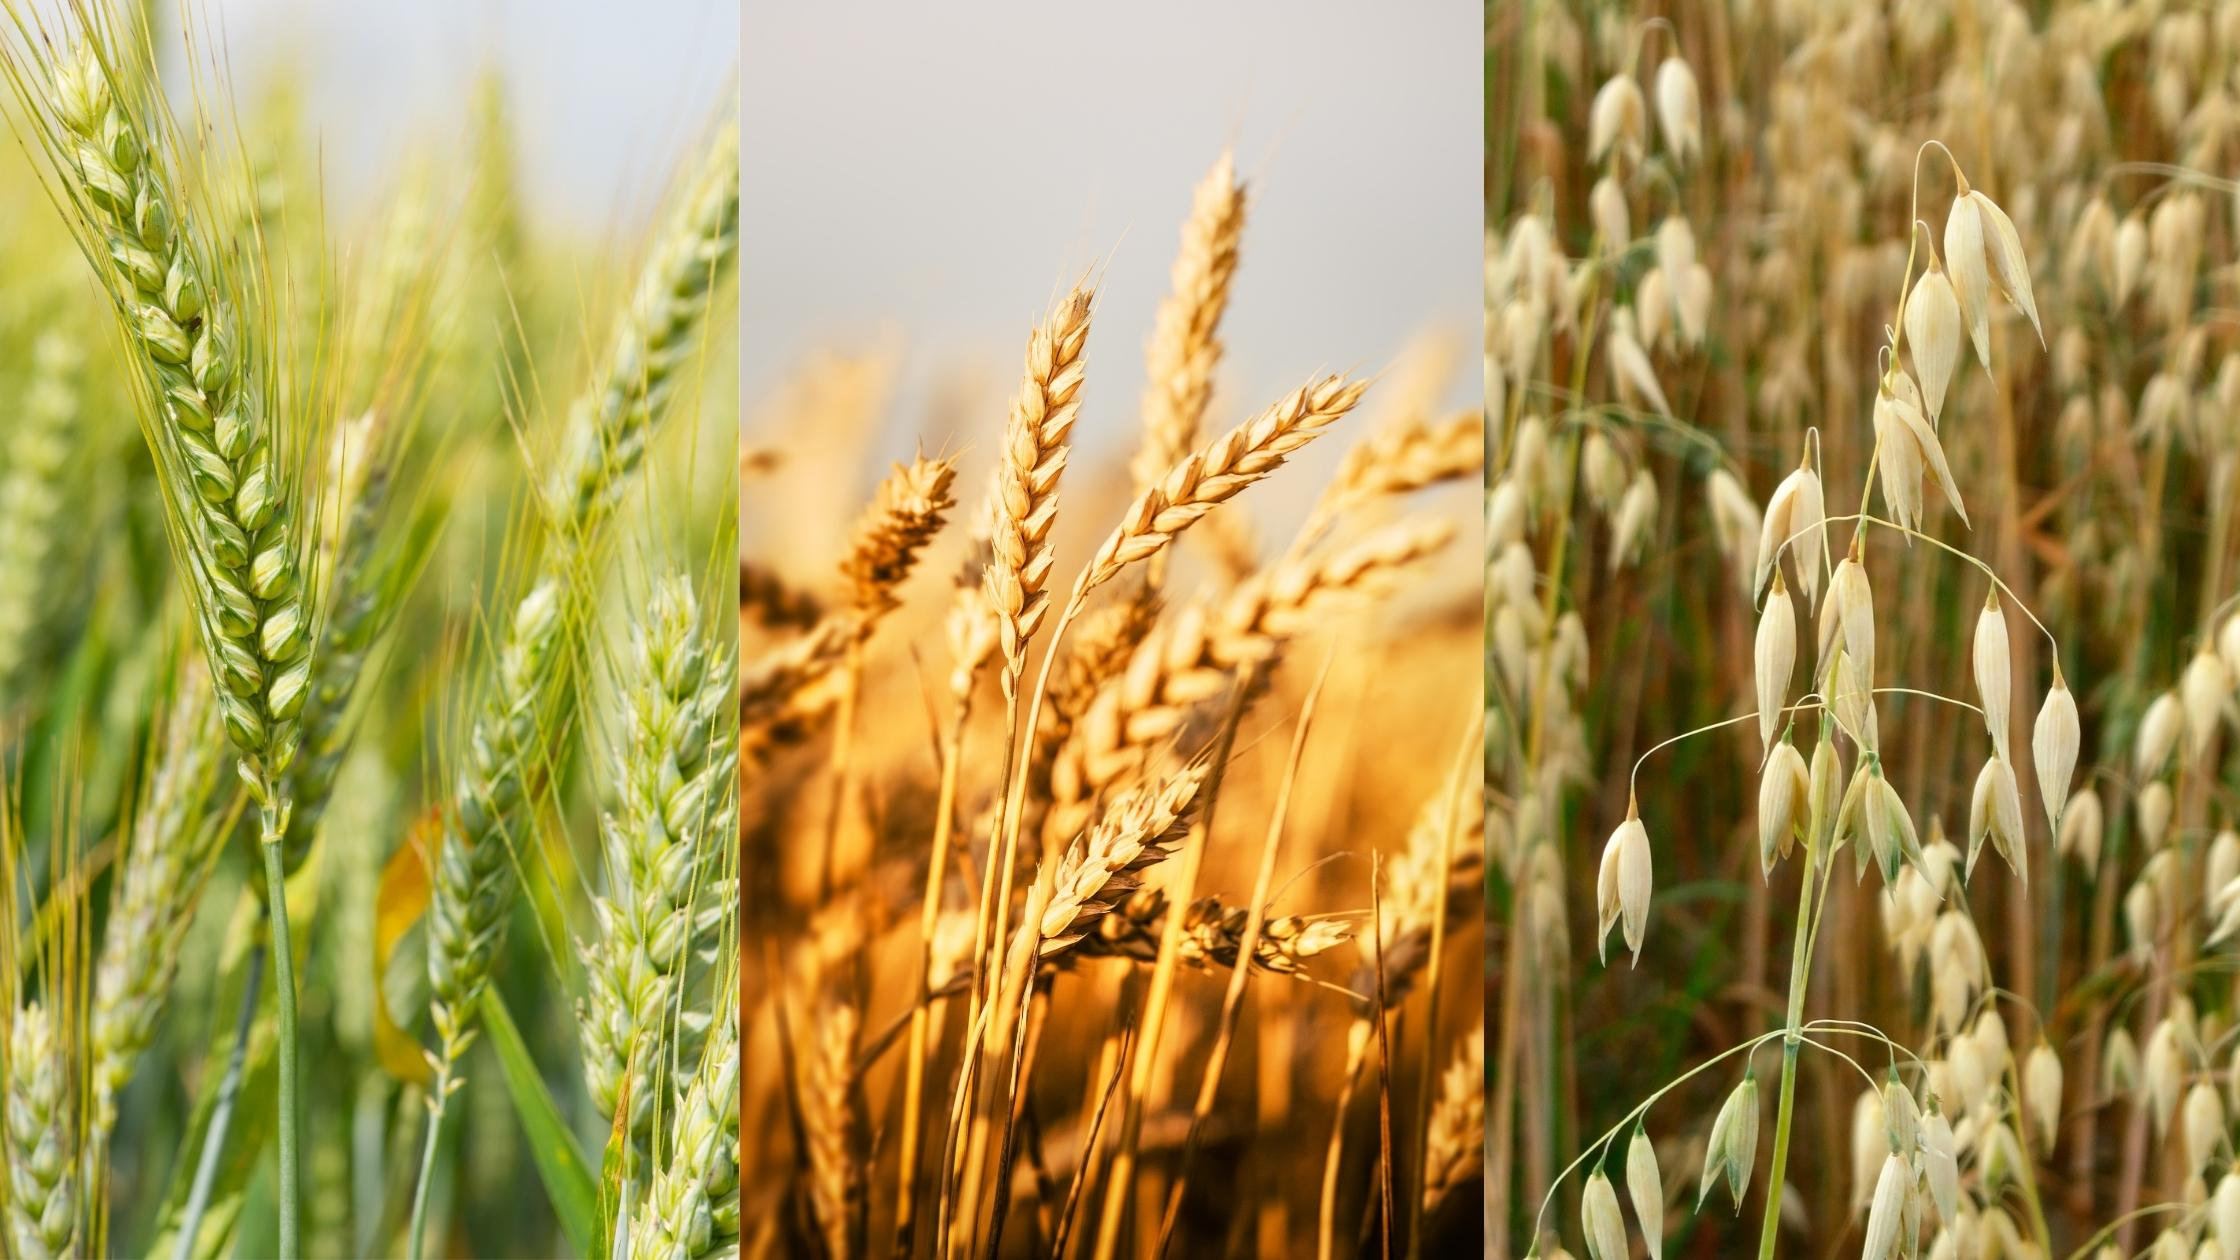 rye, wheat, and oat grasses